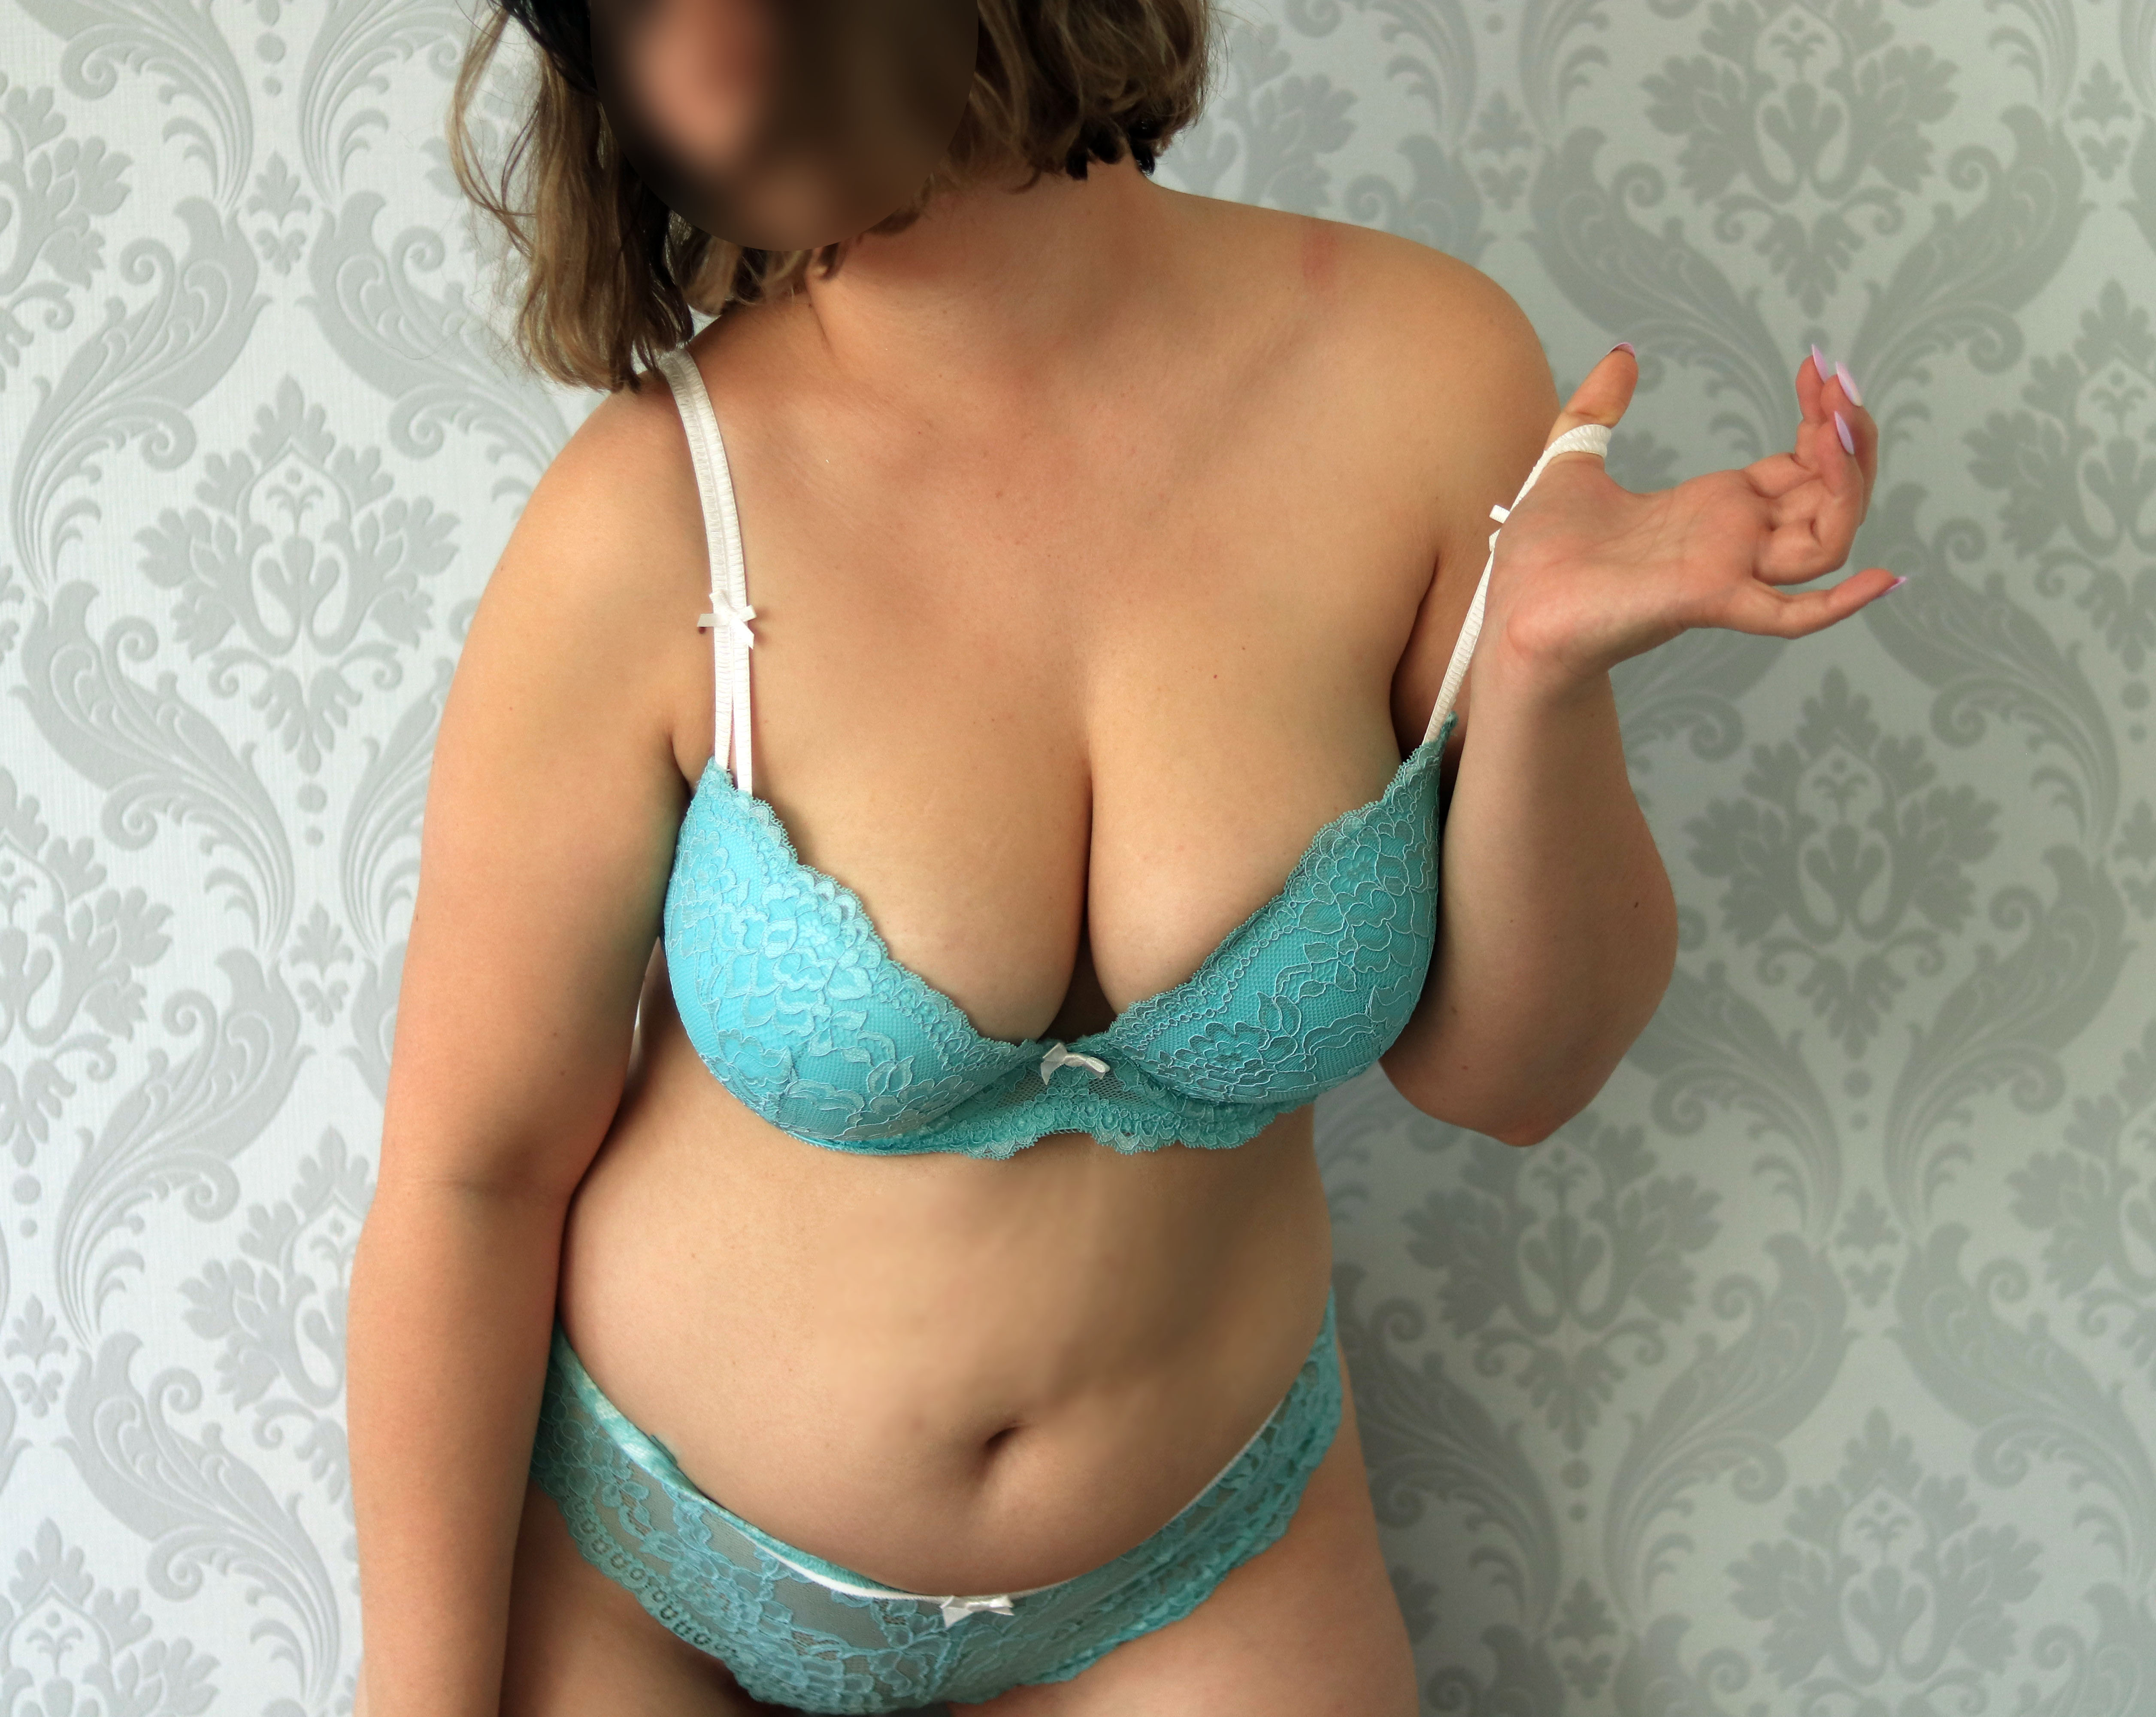 Curvy size 10 aussie with natural DDs